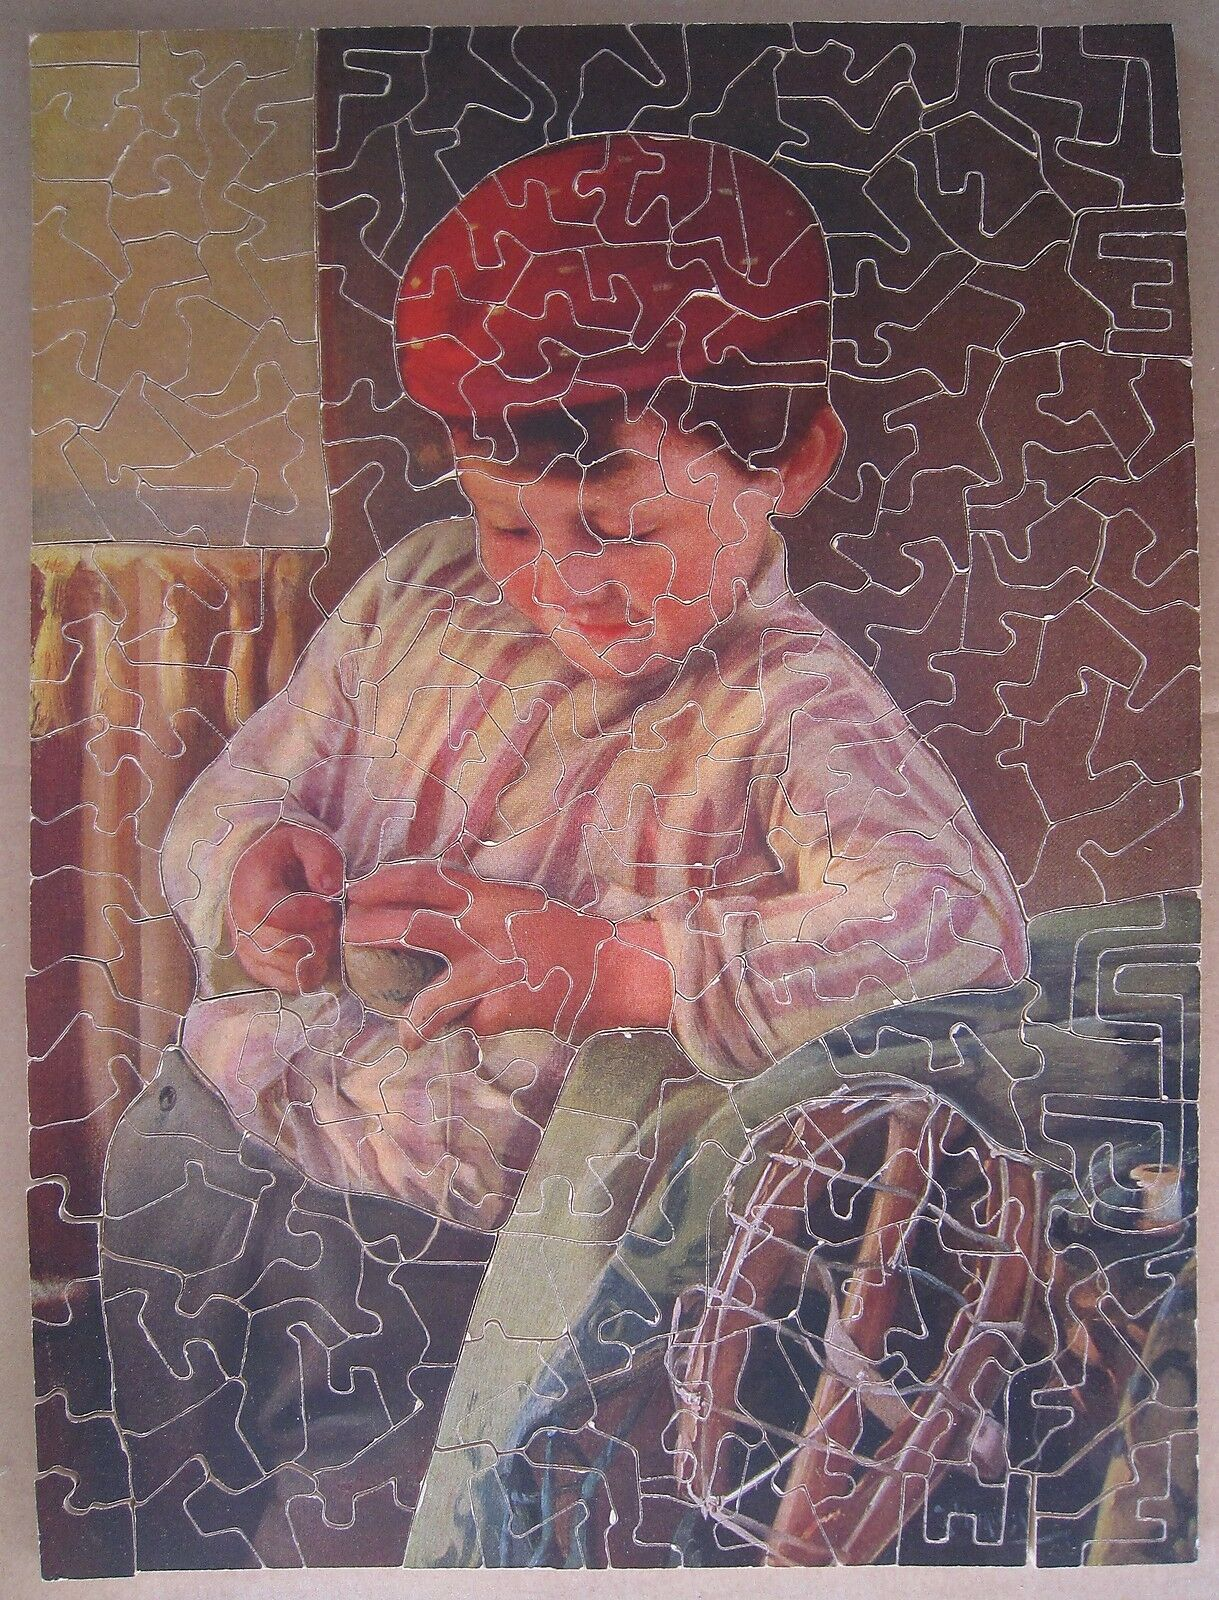 AB395 PUZZLE PASTIME CAPTAIN OF THE TEAM 250 Pièces BOIS  PARKER Complet